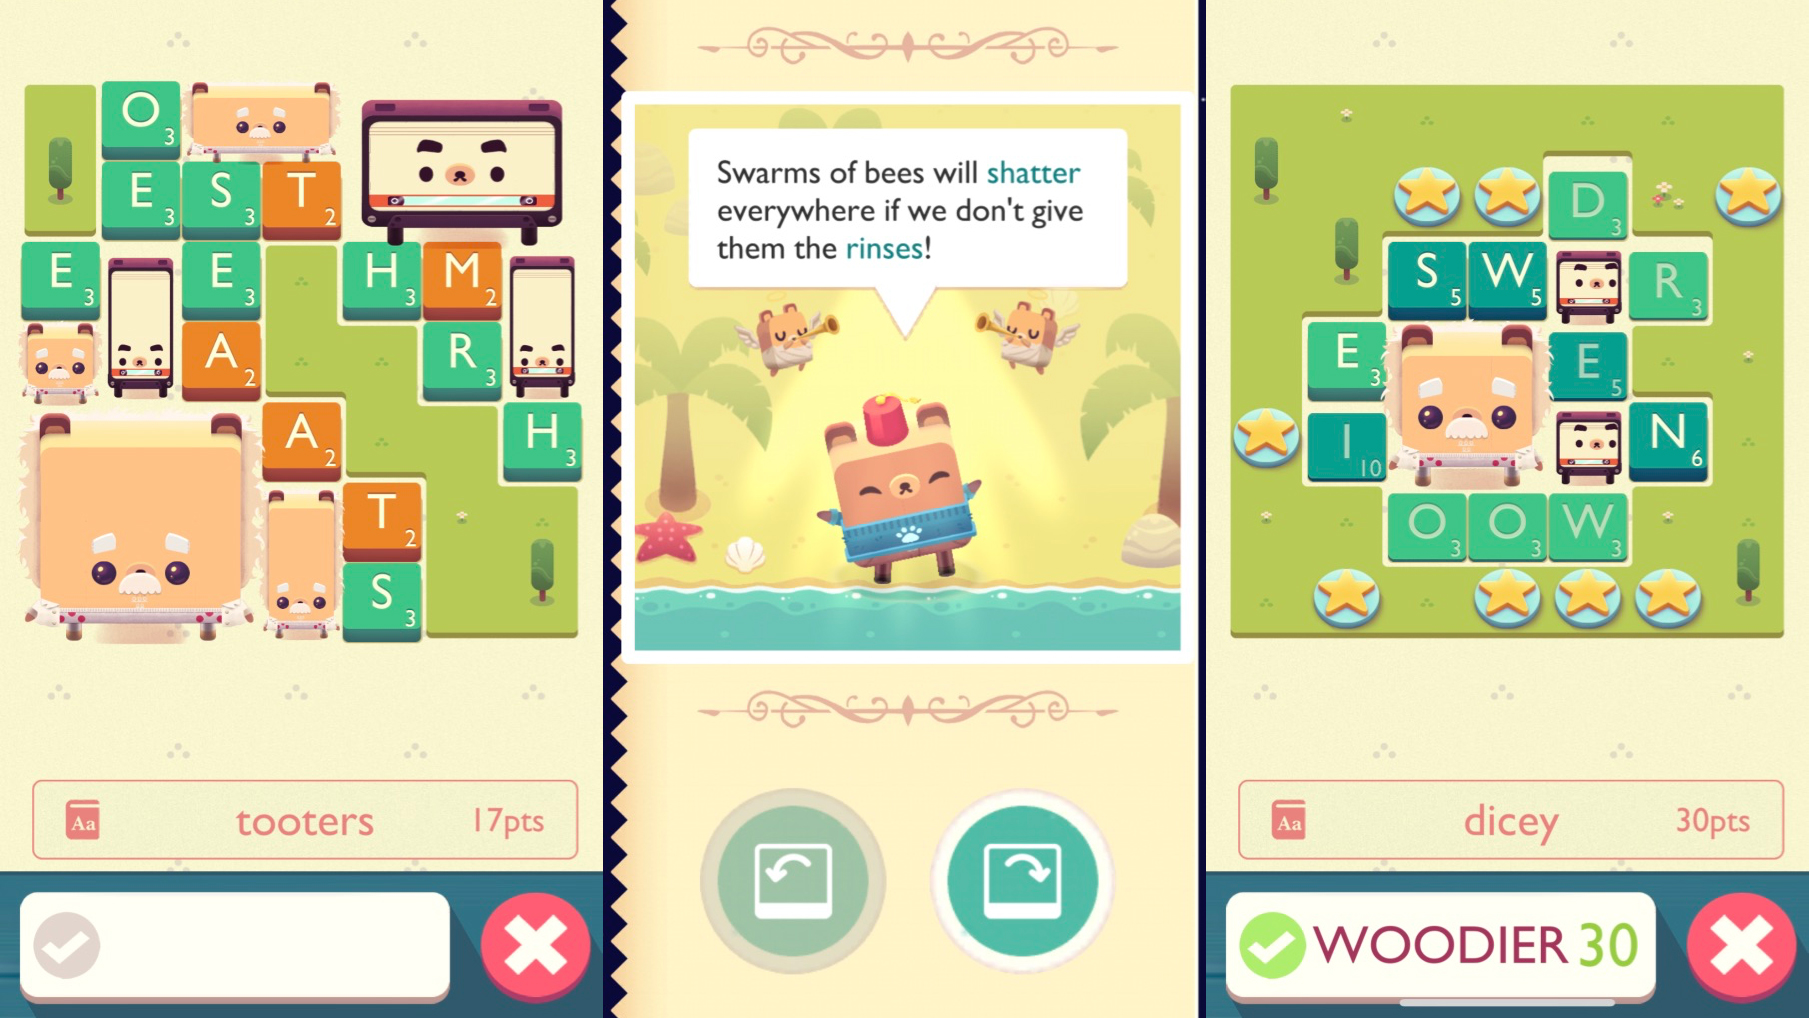 EyFW4dXYu5fL7qpDCpuCK7 - The best free Android games 2019